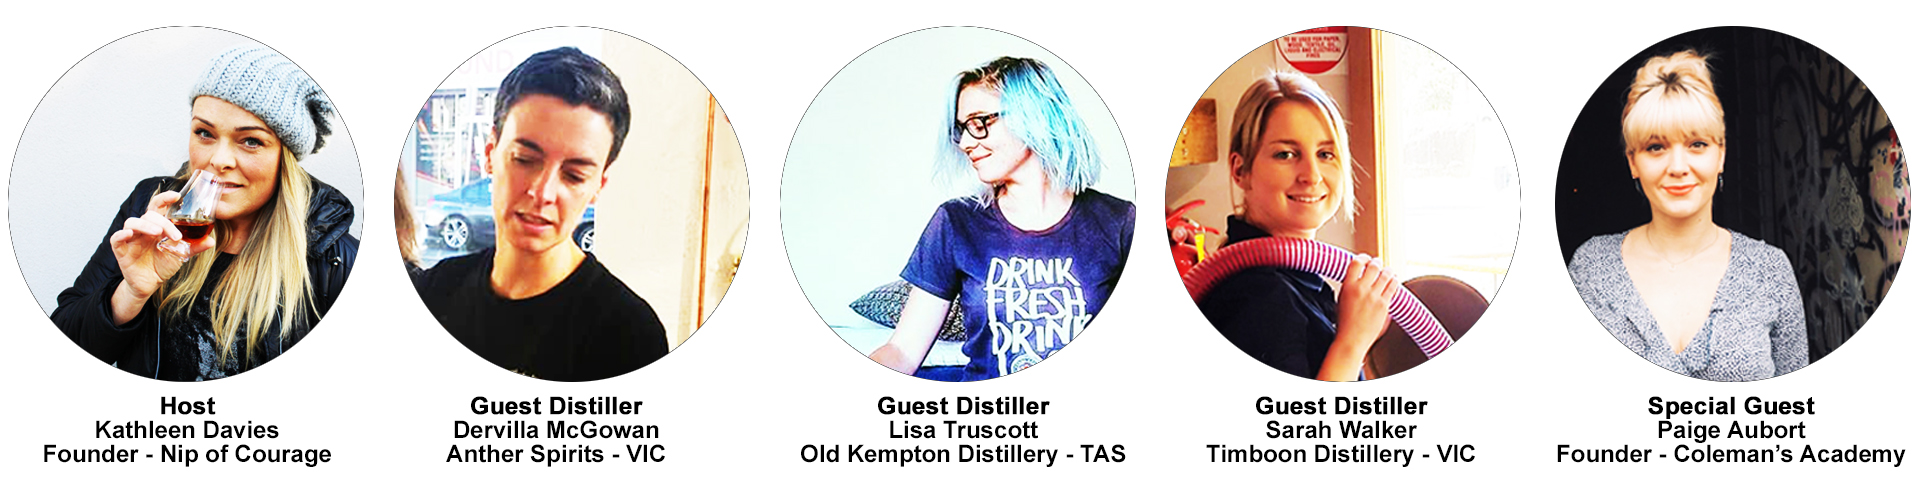 Women of Australian Distilling